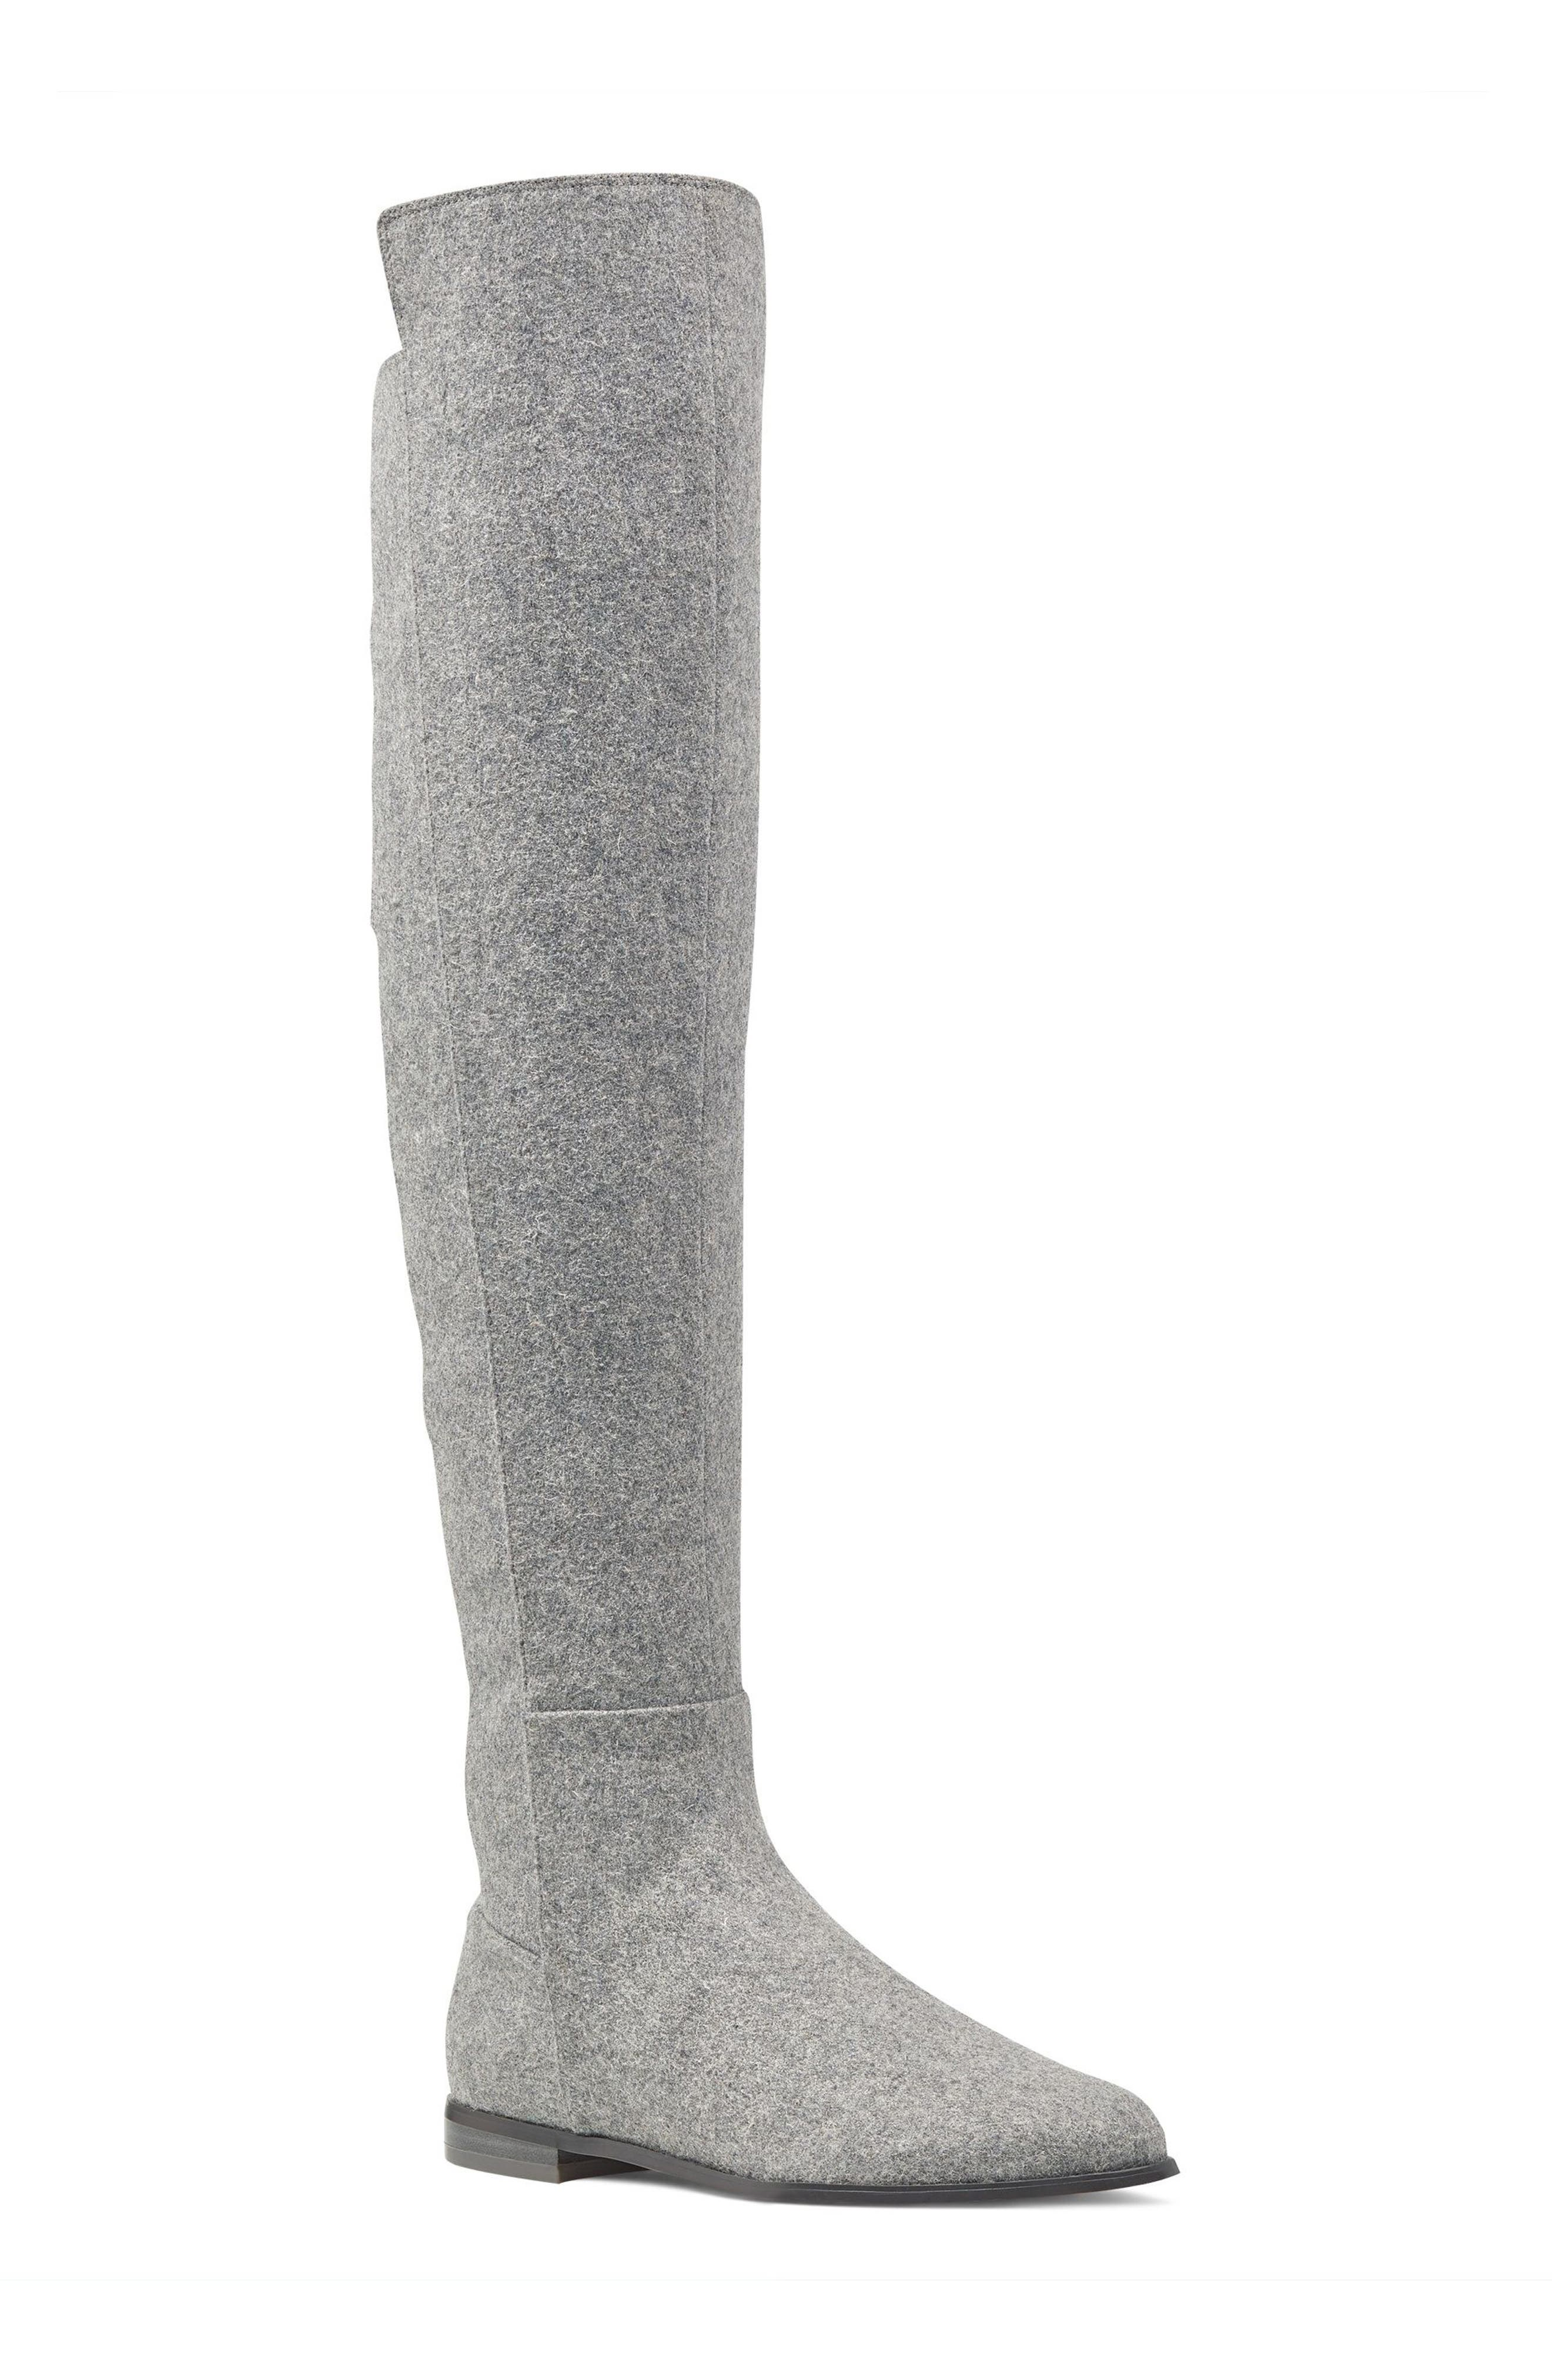 Main Image - Nine West Eltynn Over the Knee Boot (Women)